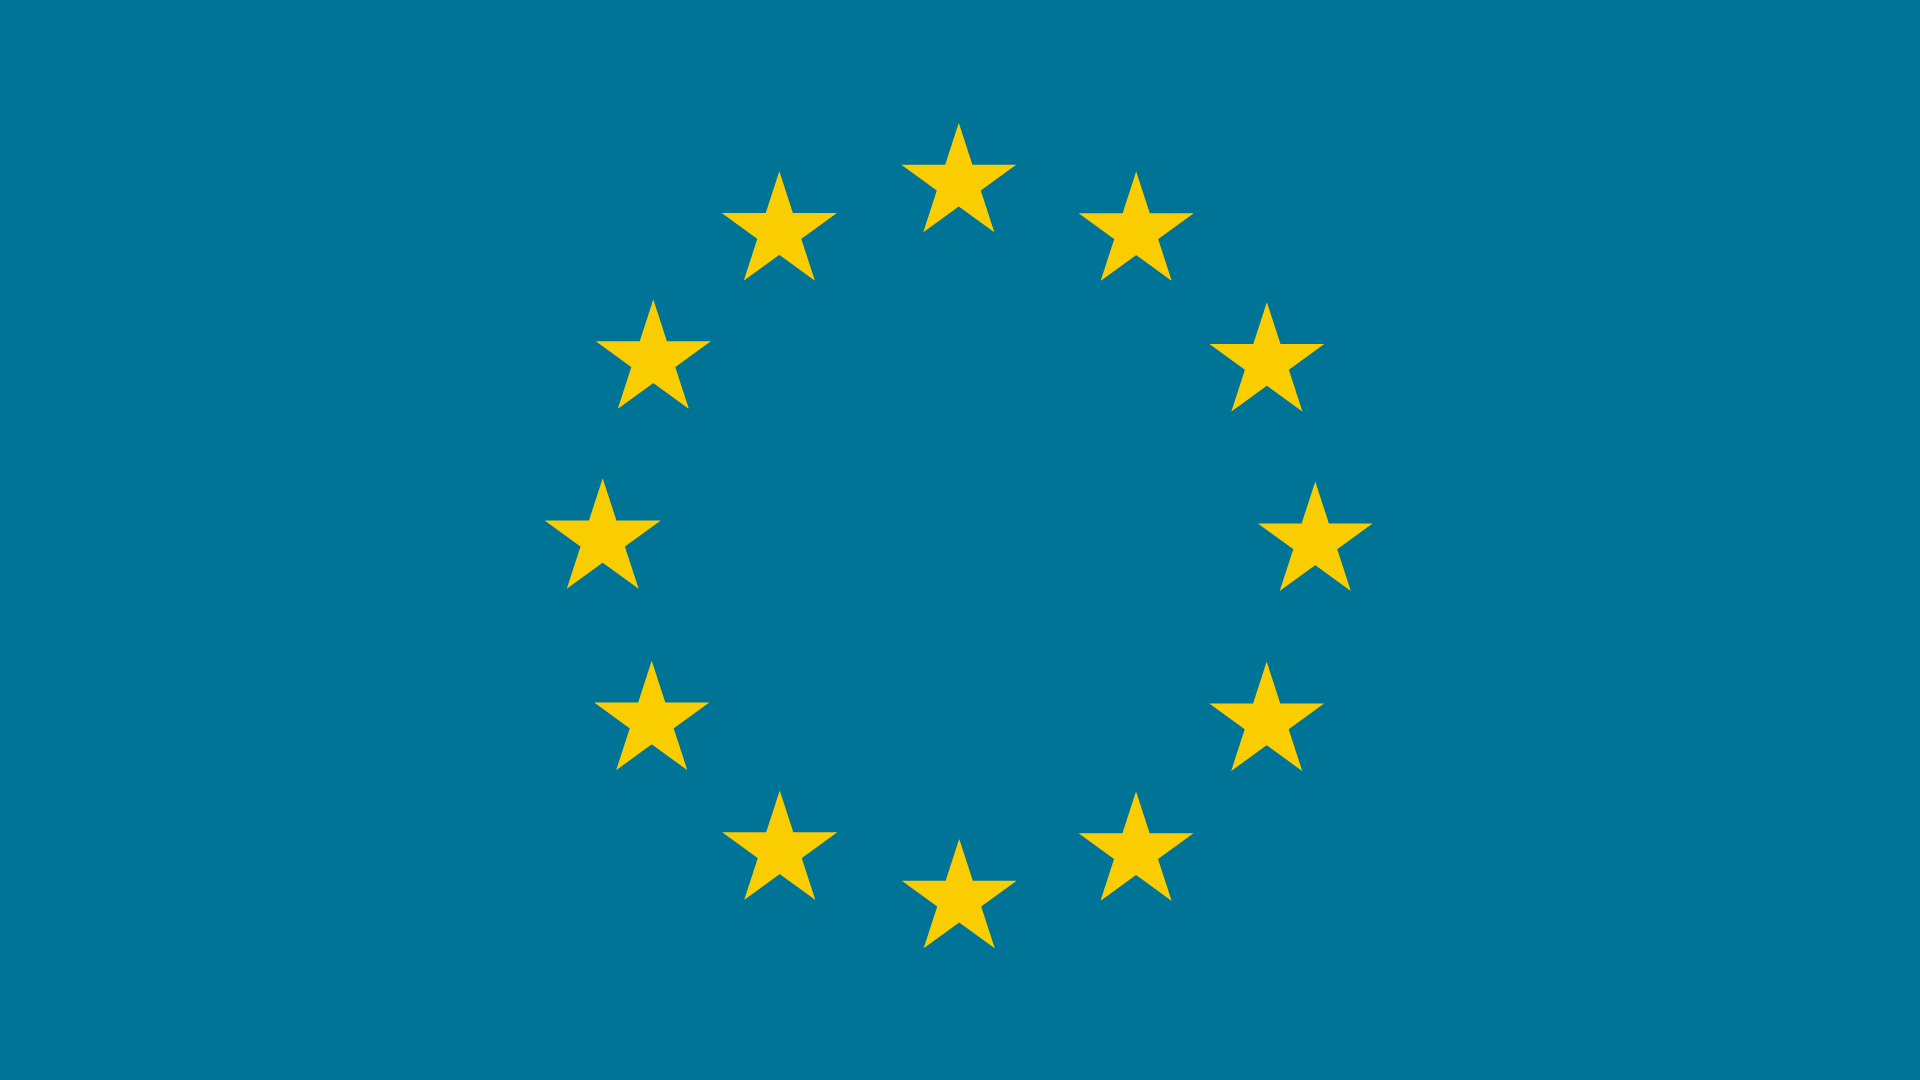 Improve alignment of research and societal values in the EU